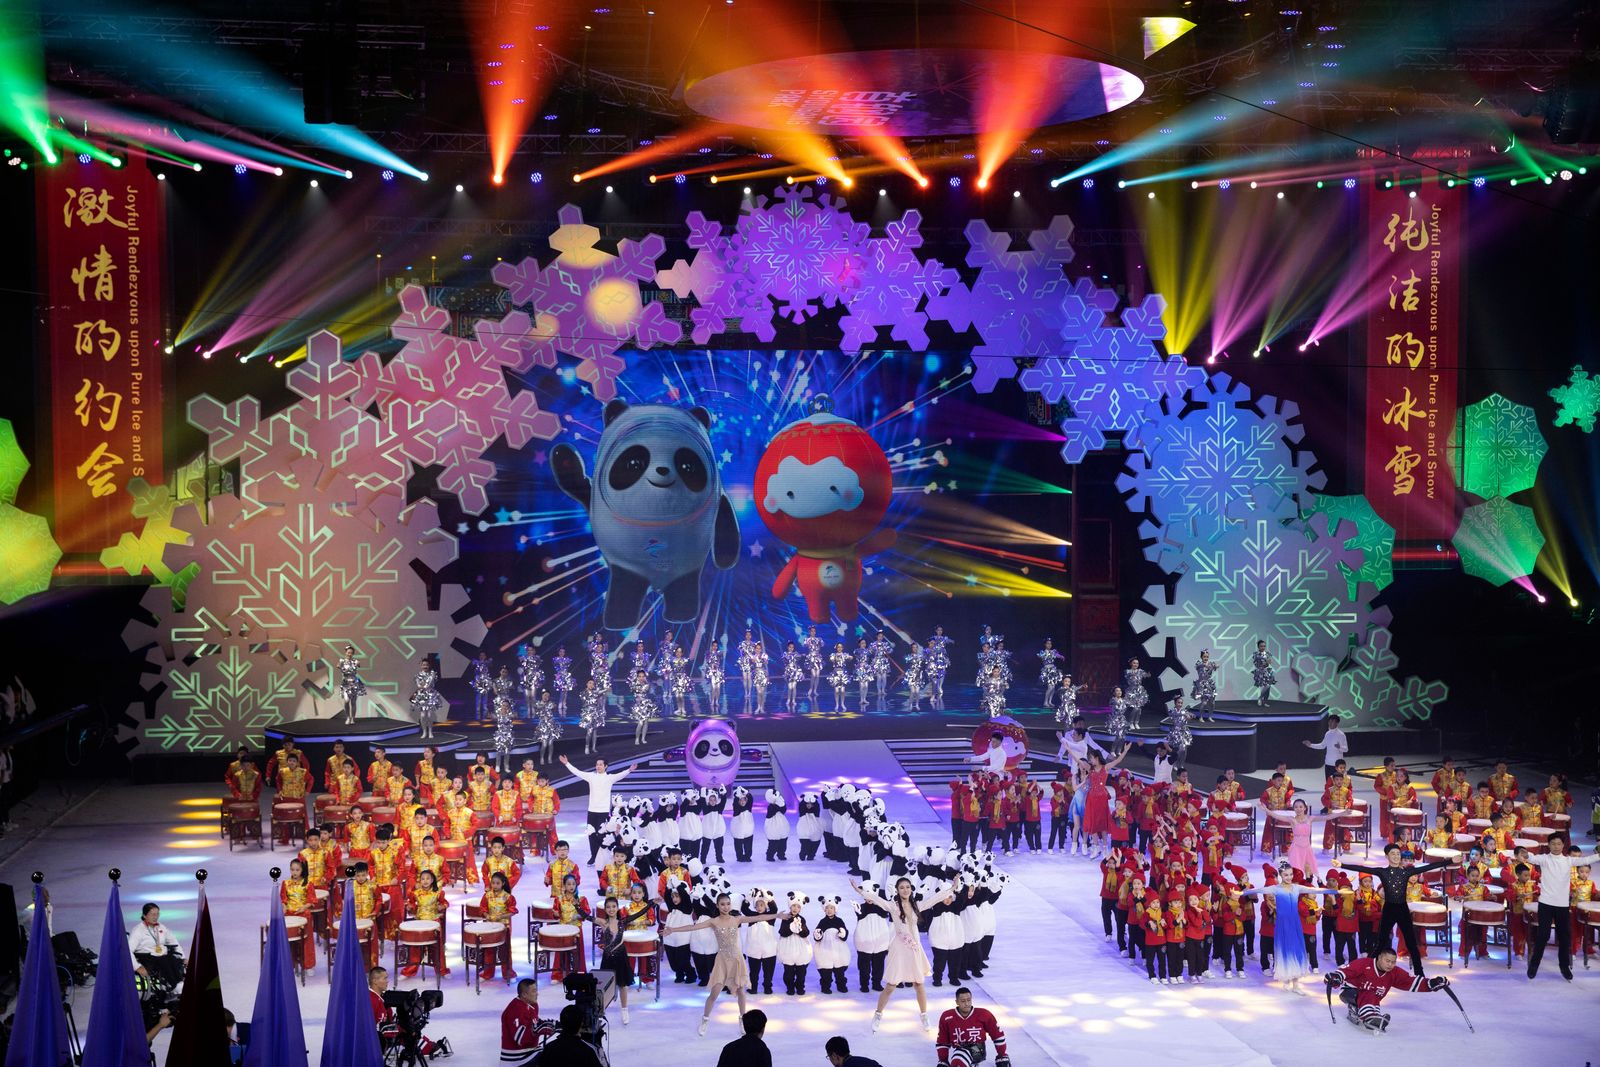 Beijing 2022 Winter Olympic Mascot Bing Dwen Dwen, left on screen and 2022 Winter Paralympic Games mascot Shuey Rong Rong, right on screen are revealed during a ceremony held at the Shougang Ice Hockey Arena in Beijing on Tuesday, Sept. 17, 2019. (AP Photo/Ng Han Guan)